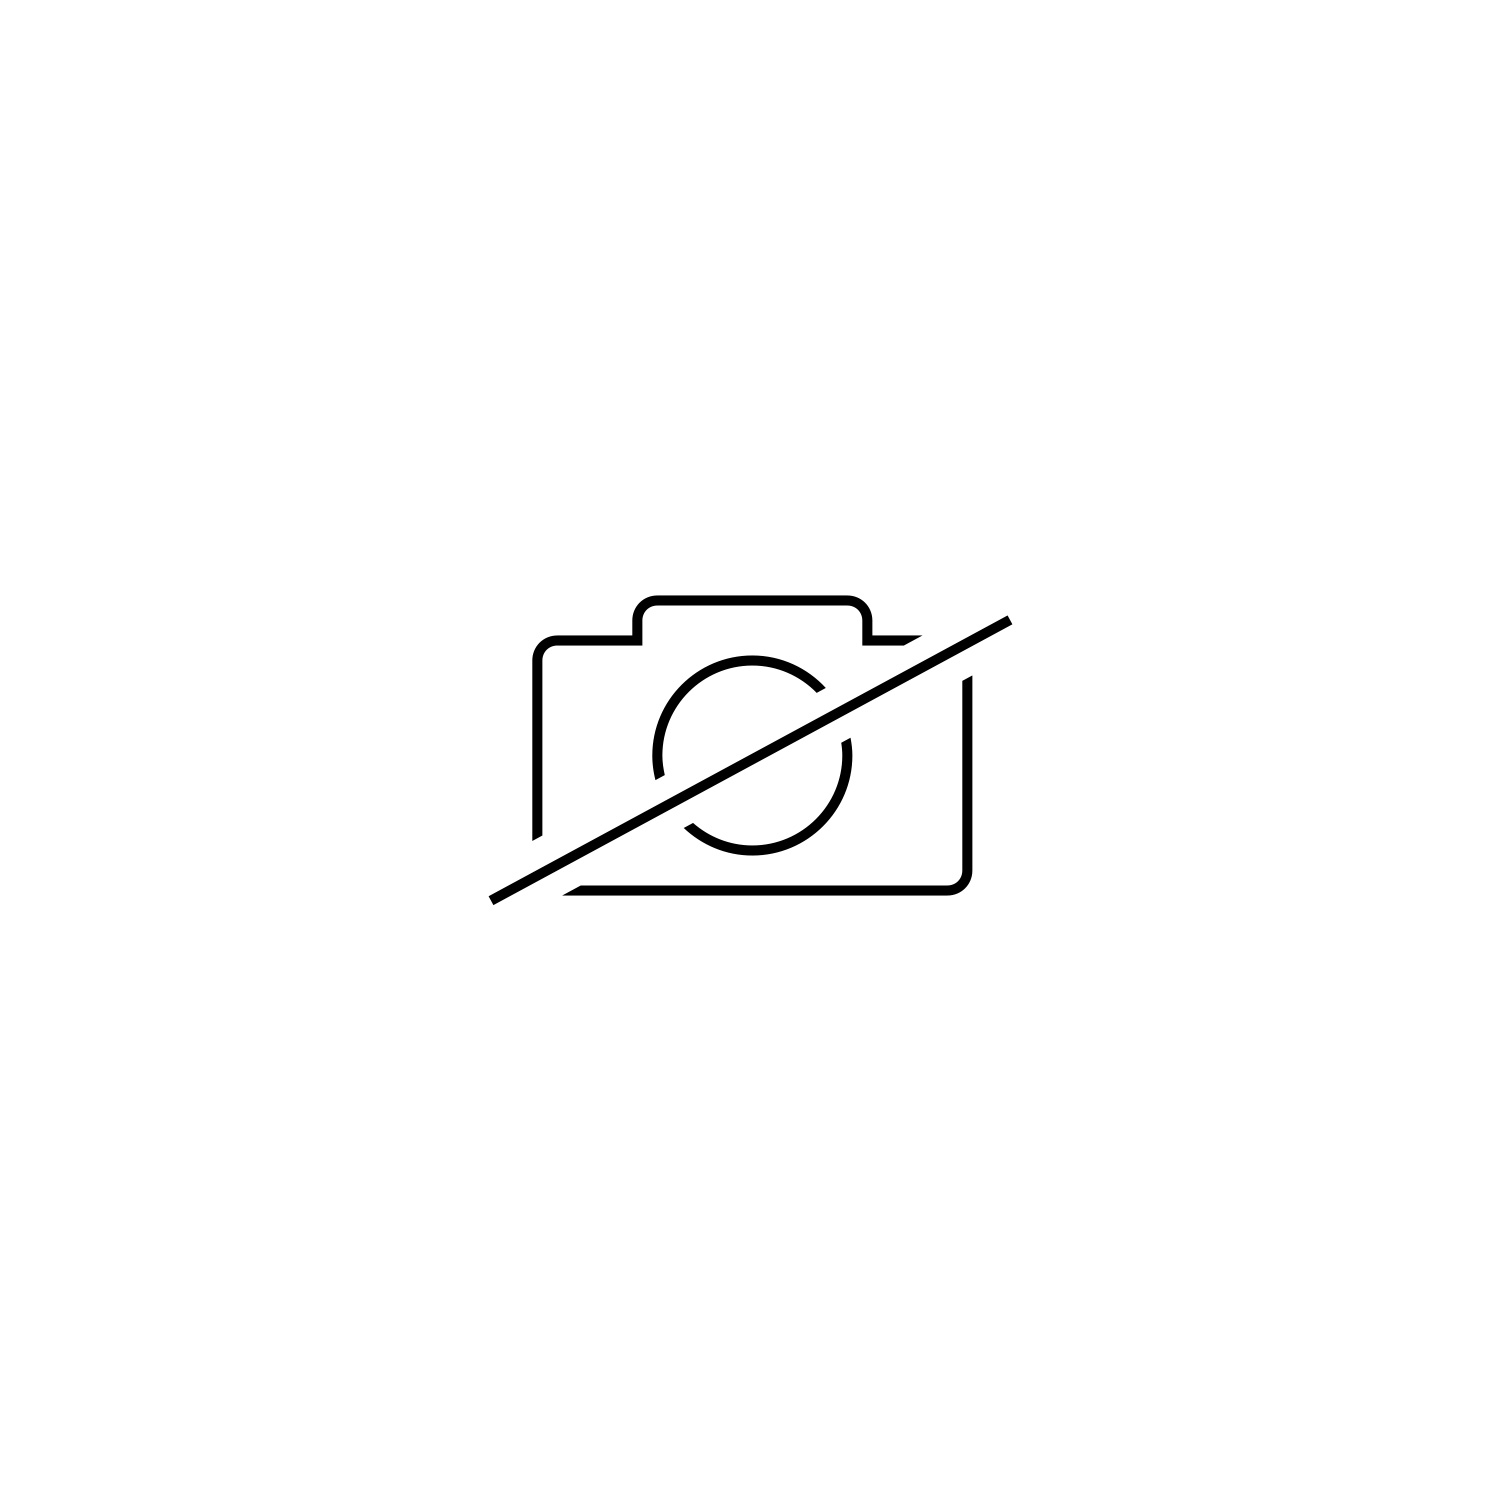 heritage Poloshirt, Mens, offwhite, M